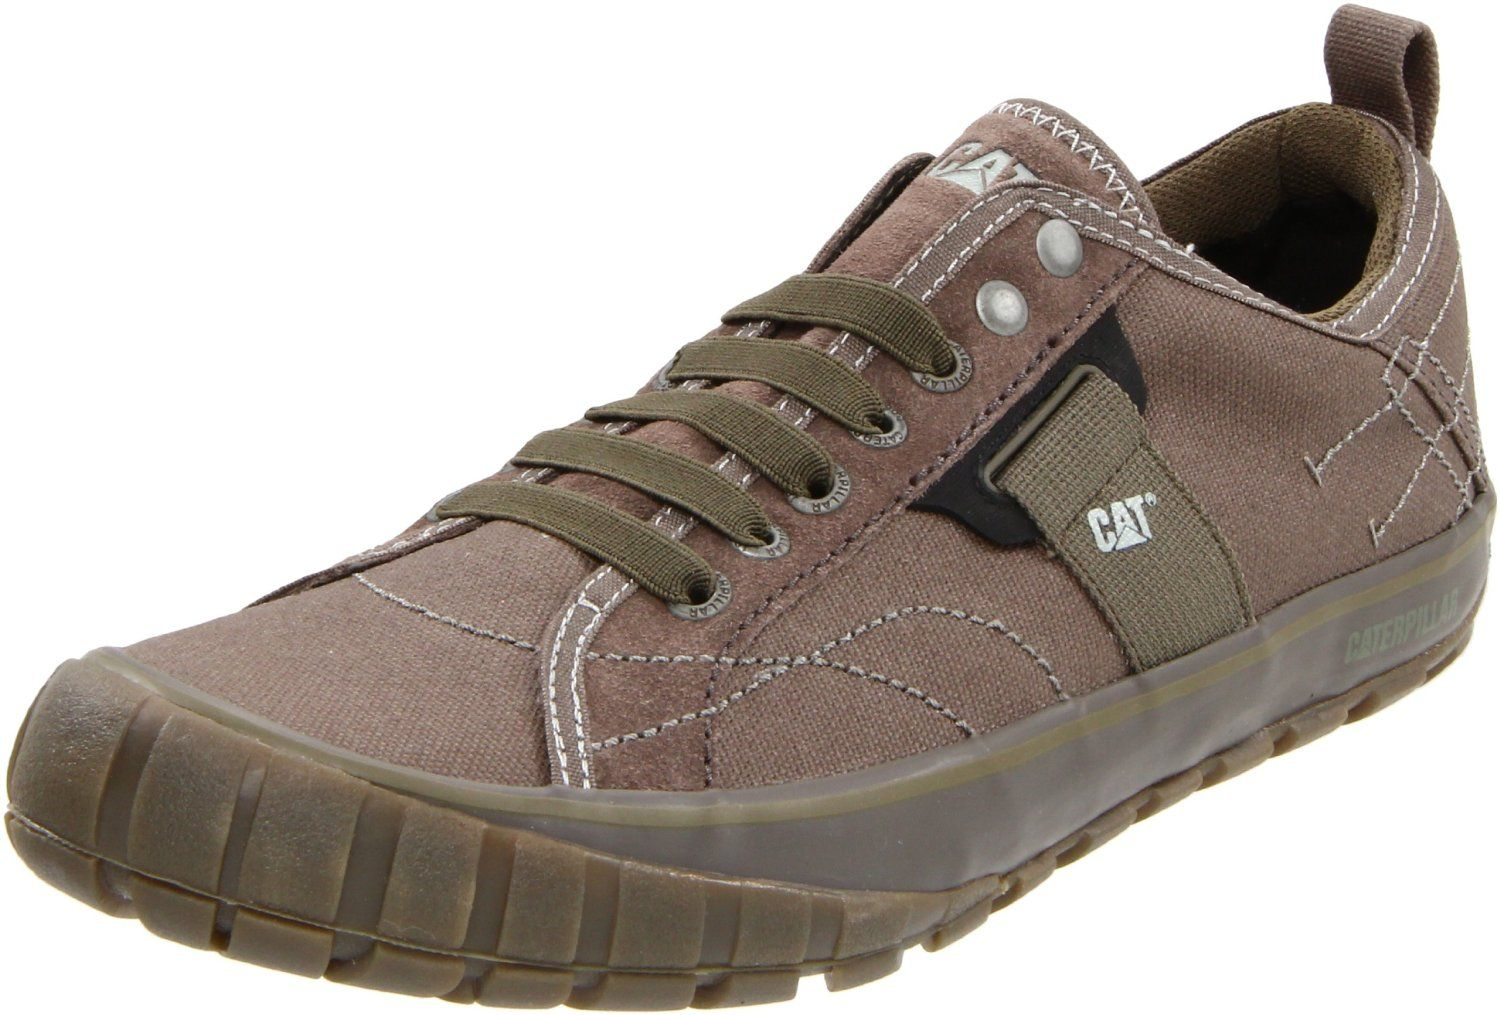 aa97e1d995a32 Amazon.com: Caterpillar Men's Neder Canvas Lace-Up Sneaker: CAT  CATERPILLAR: Shoes